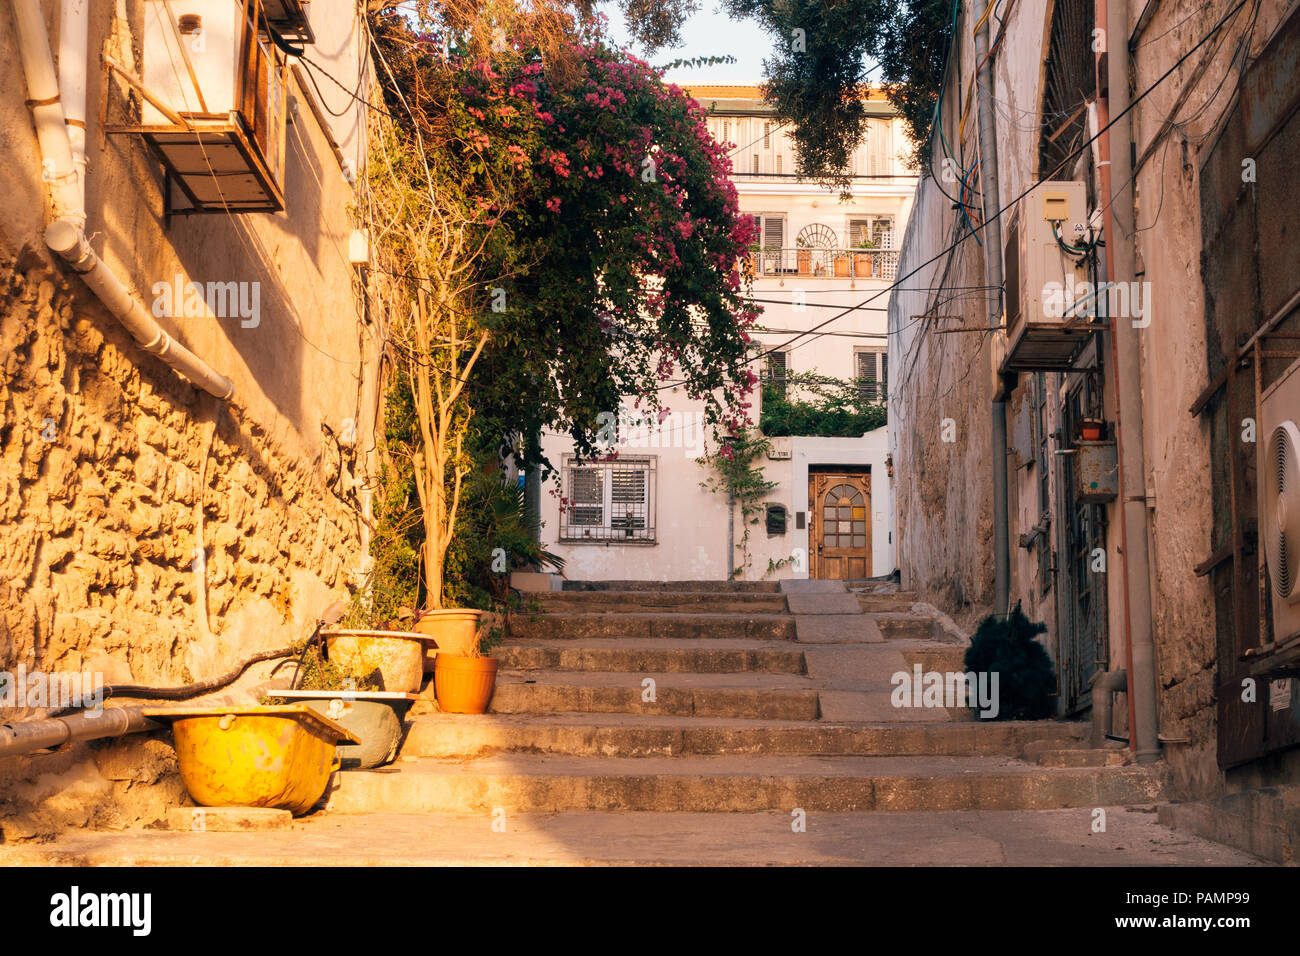 a stone alleyway with stairs at sunset in Old Jaffa, Tel Aviv-Yafo, Israel - Stock Image